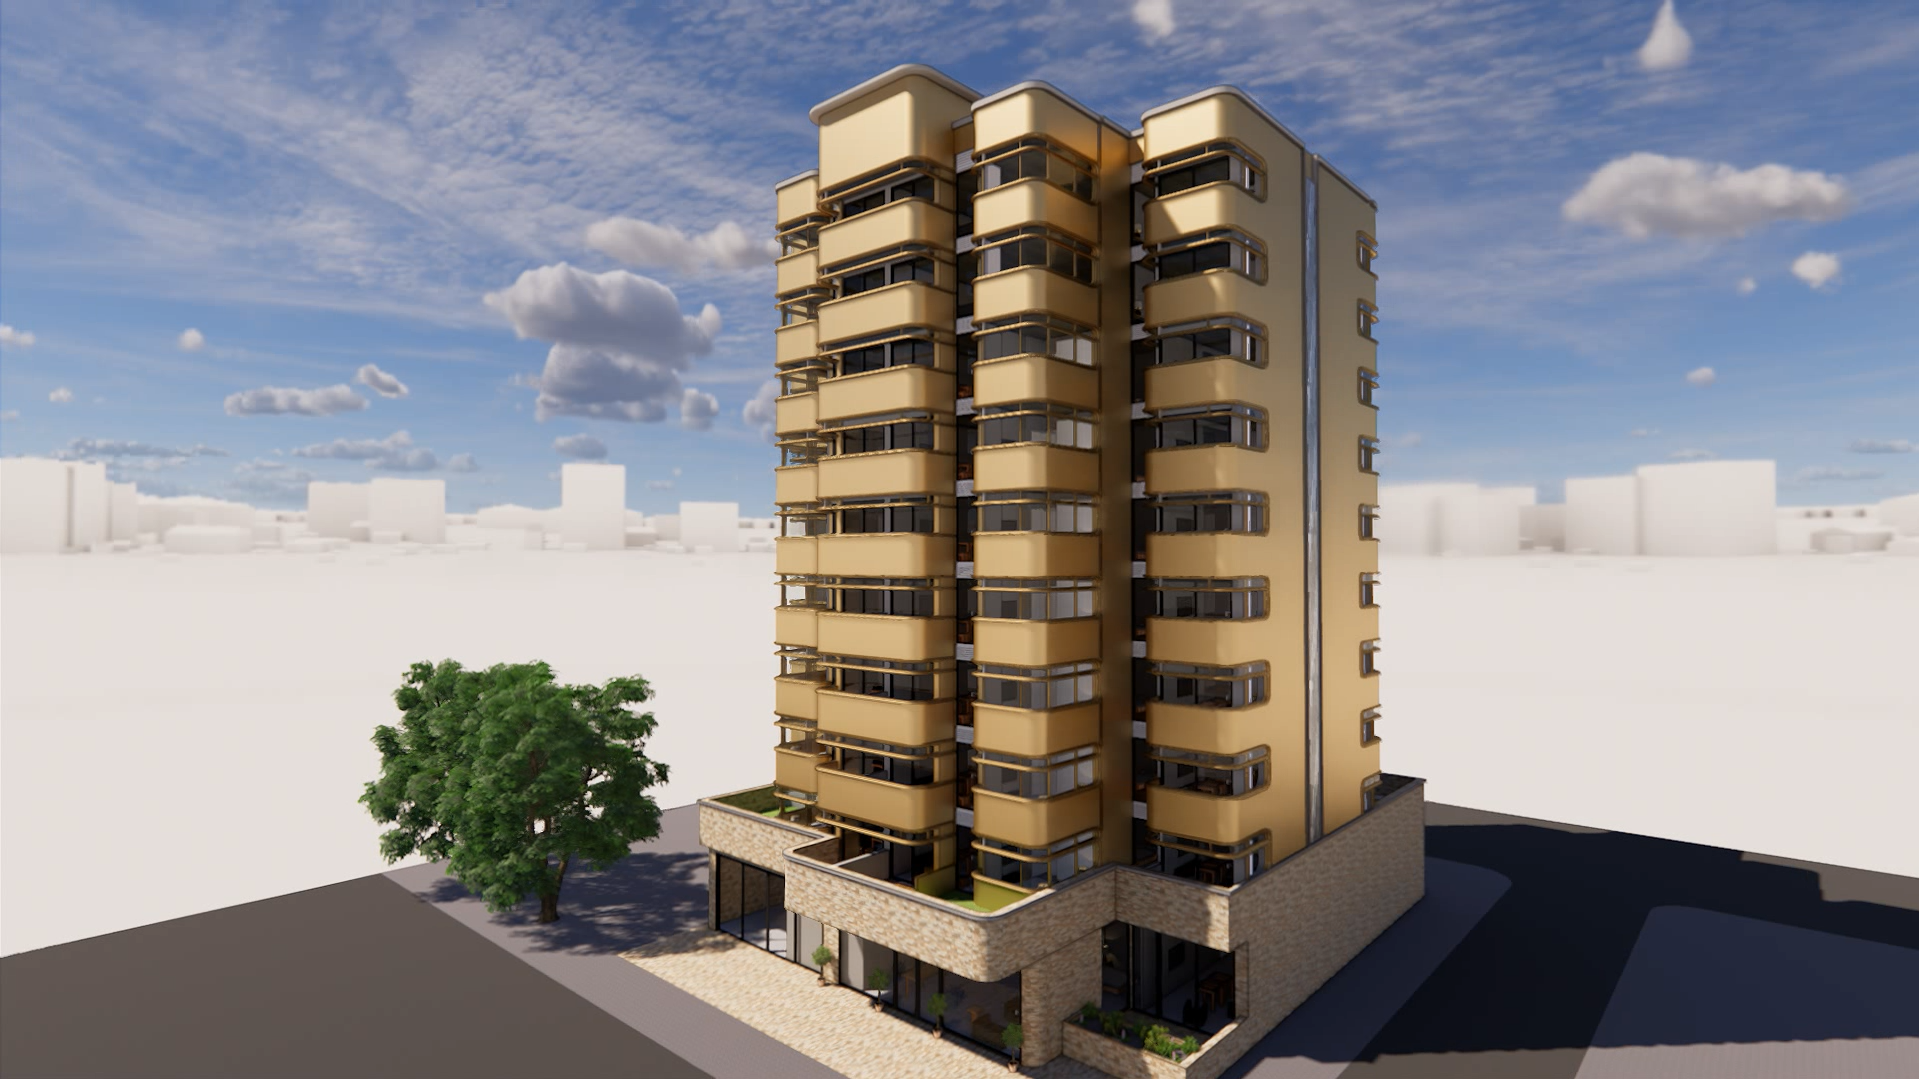 Rendering of a modern building from the outside